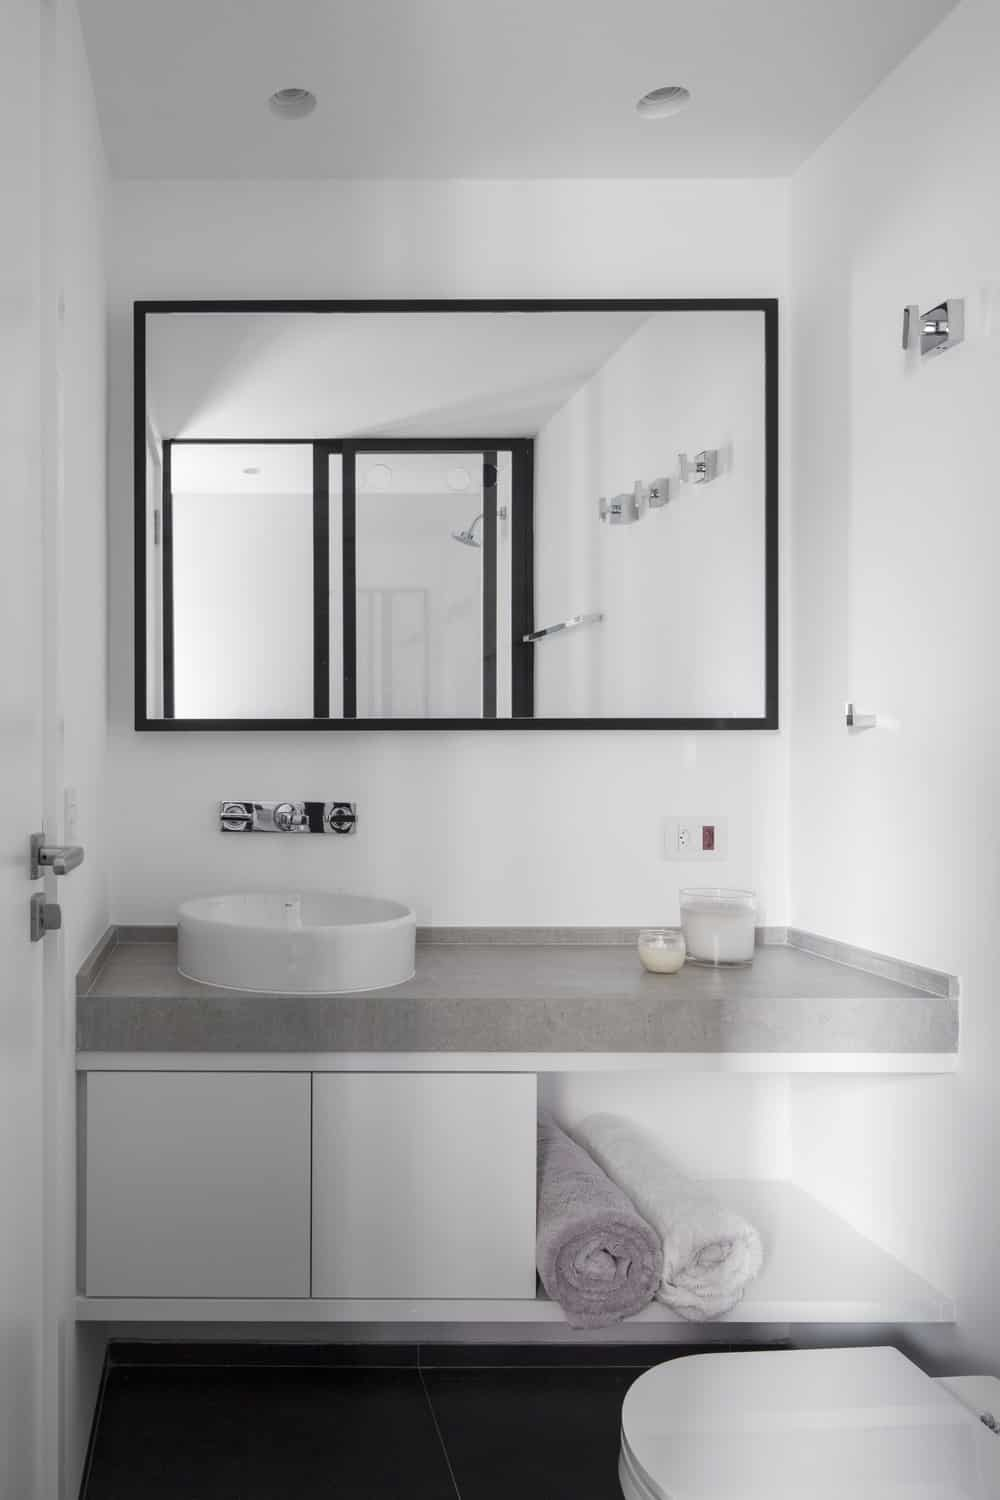 This is a look at the modern floating vanity of the bathroom topped iwth a mirror by the toilet.